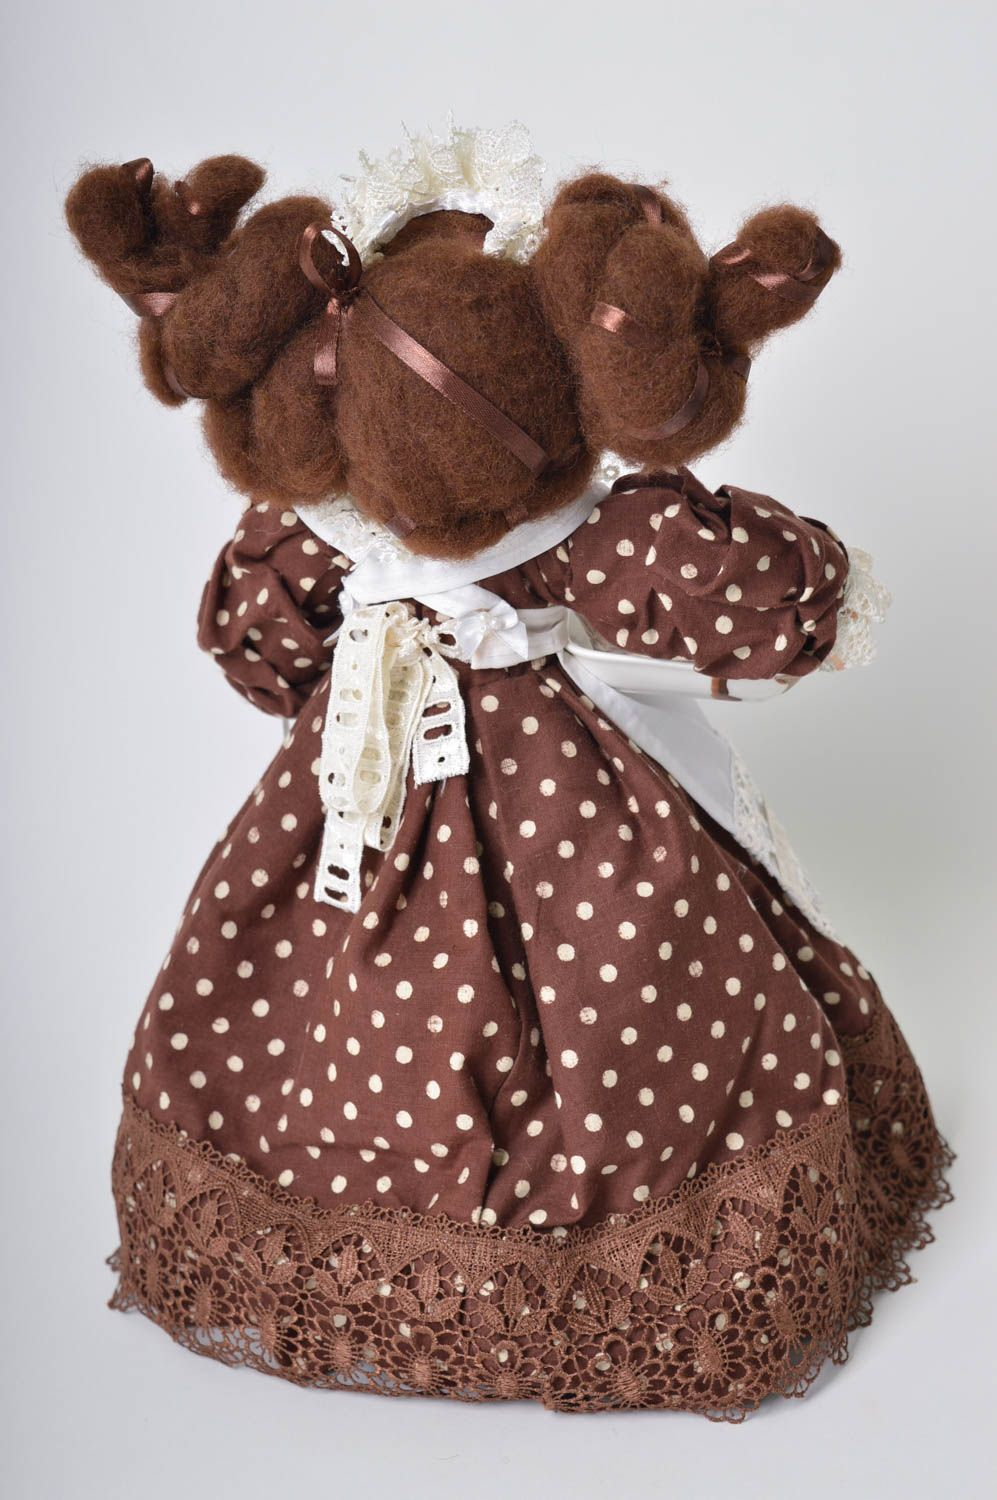 Handmade soft doll soft toy for kids nursery decor for decorative use only photo 3